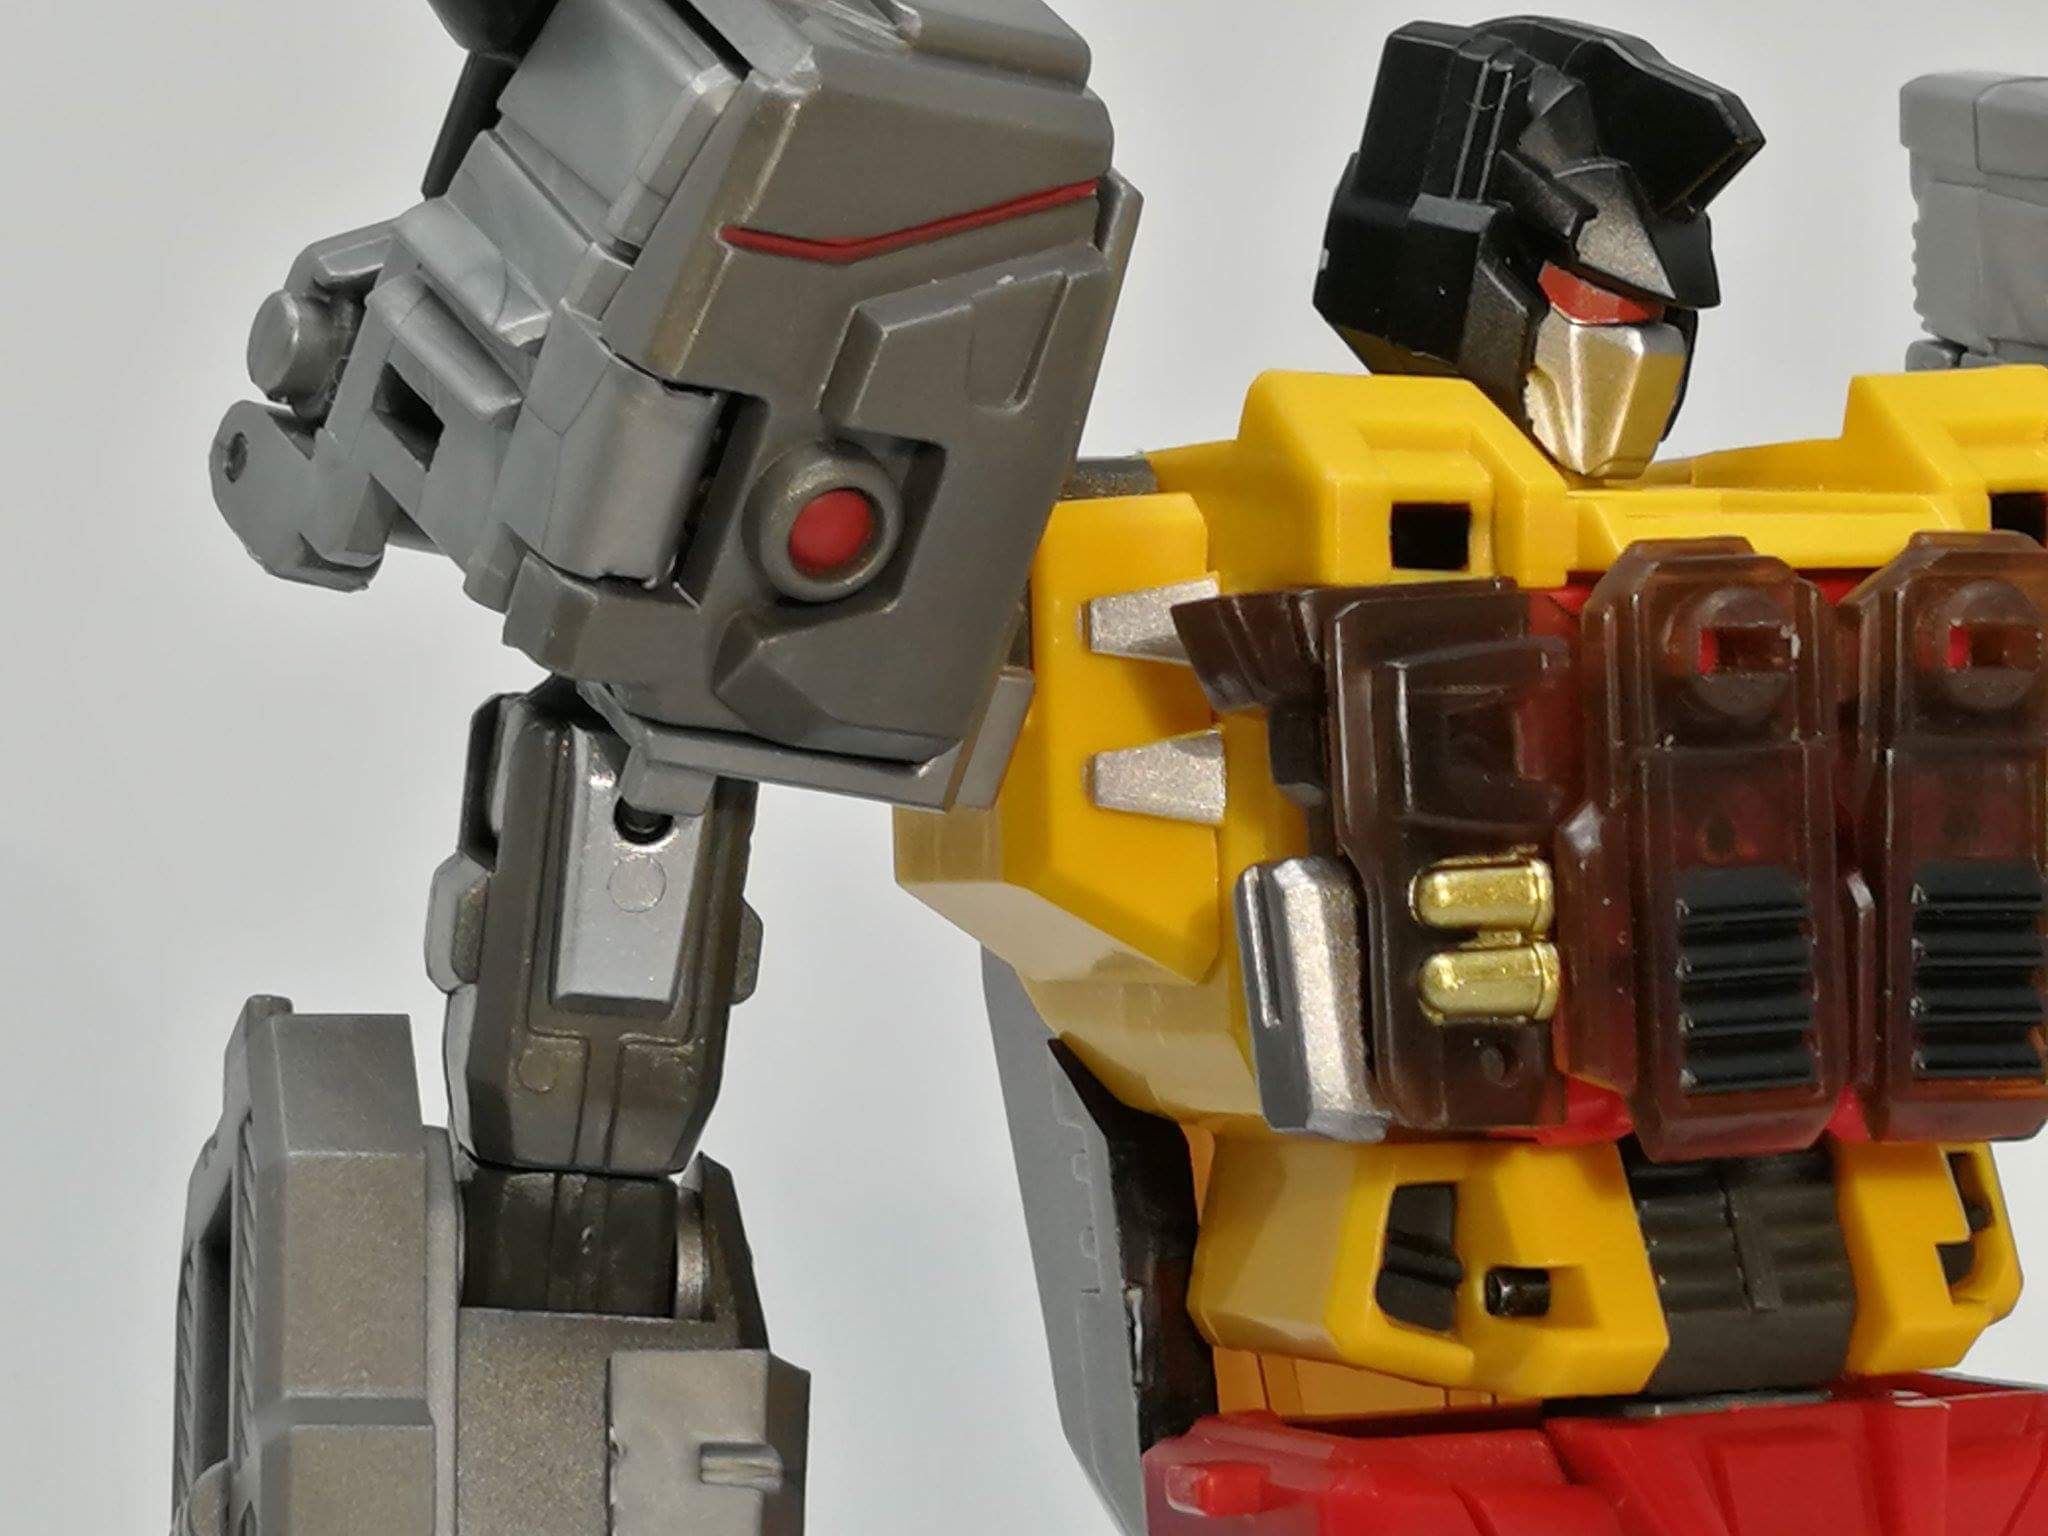 [FansProject] Produit Tiers - Jouets LER (Lost Exo Realm) - aka Dinobots - Page 4 QQu3tccm_o